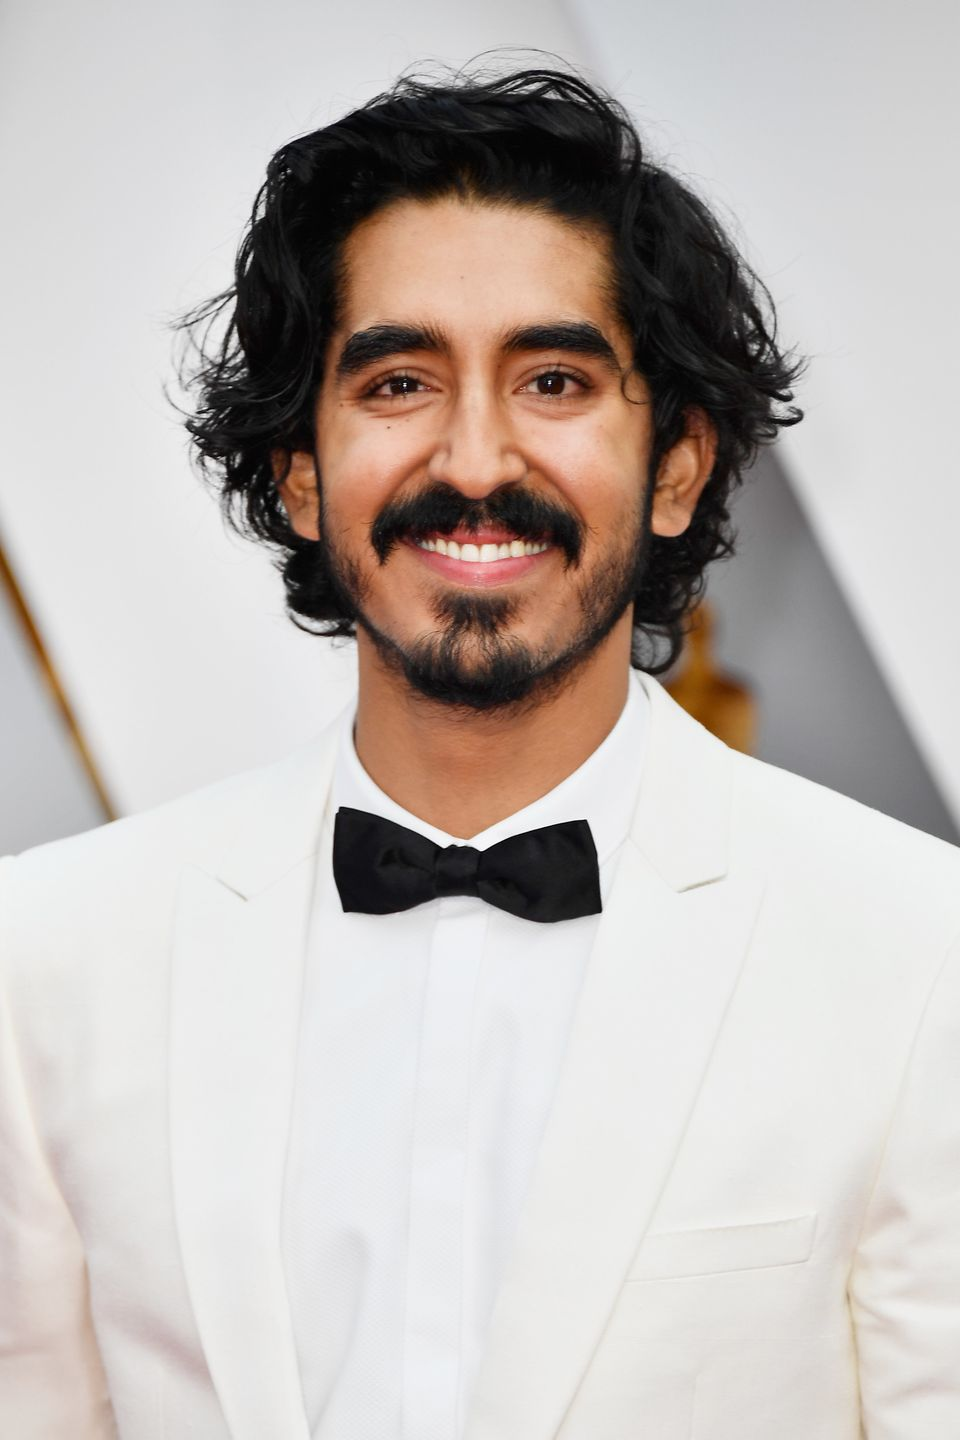 "<a href=""http://www.huffingtonpost.com/entry/dev-patel-is-a-curly-haired-god_us_58b06244e4b0a8a9b781a634"">Dev Patel</a> is th"